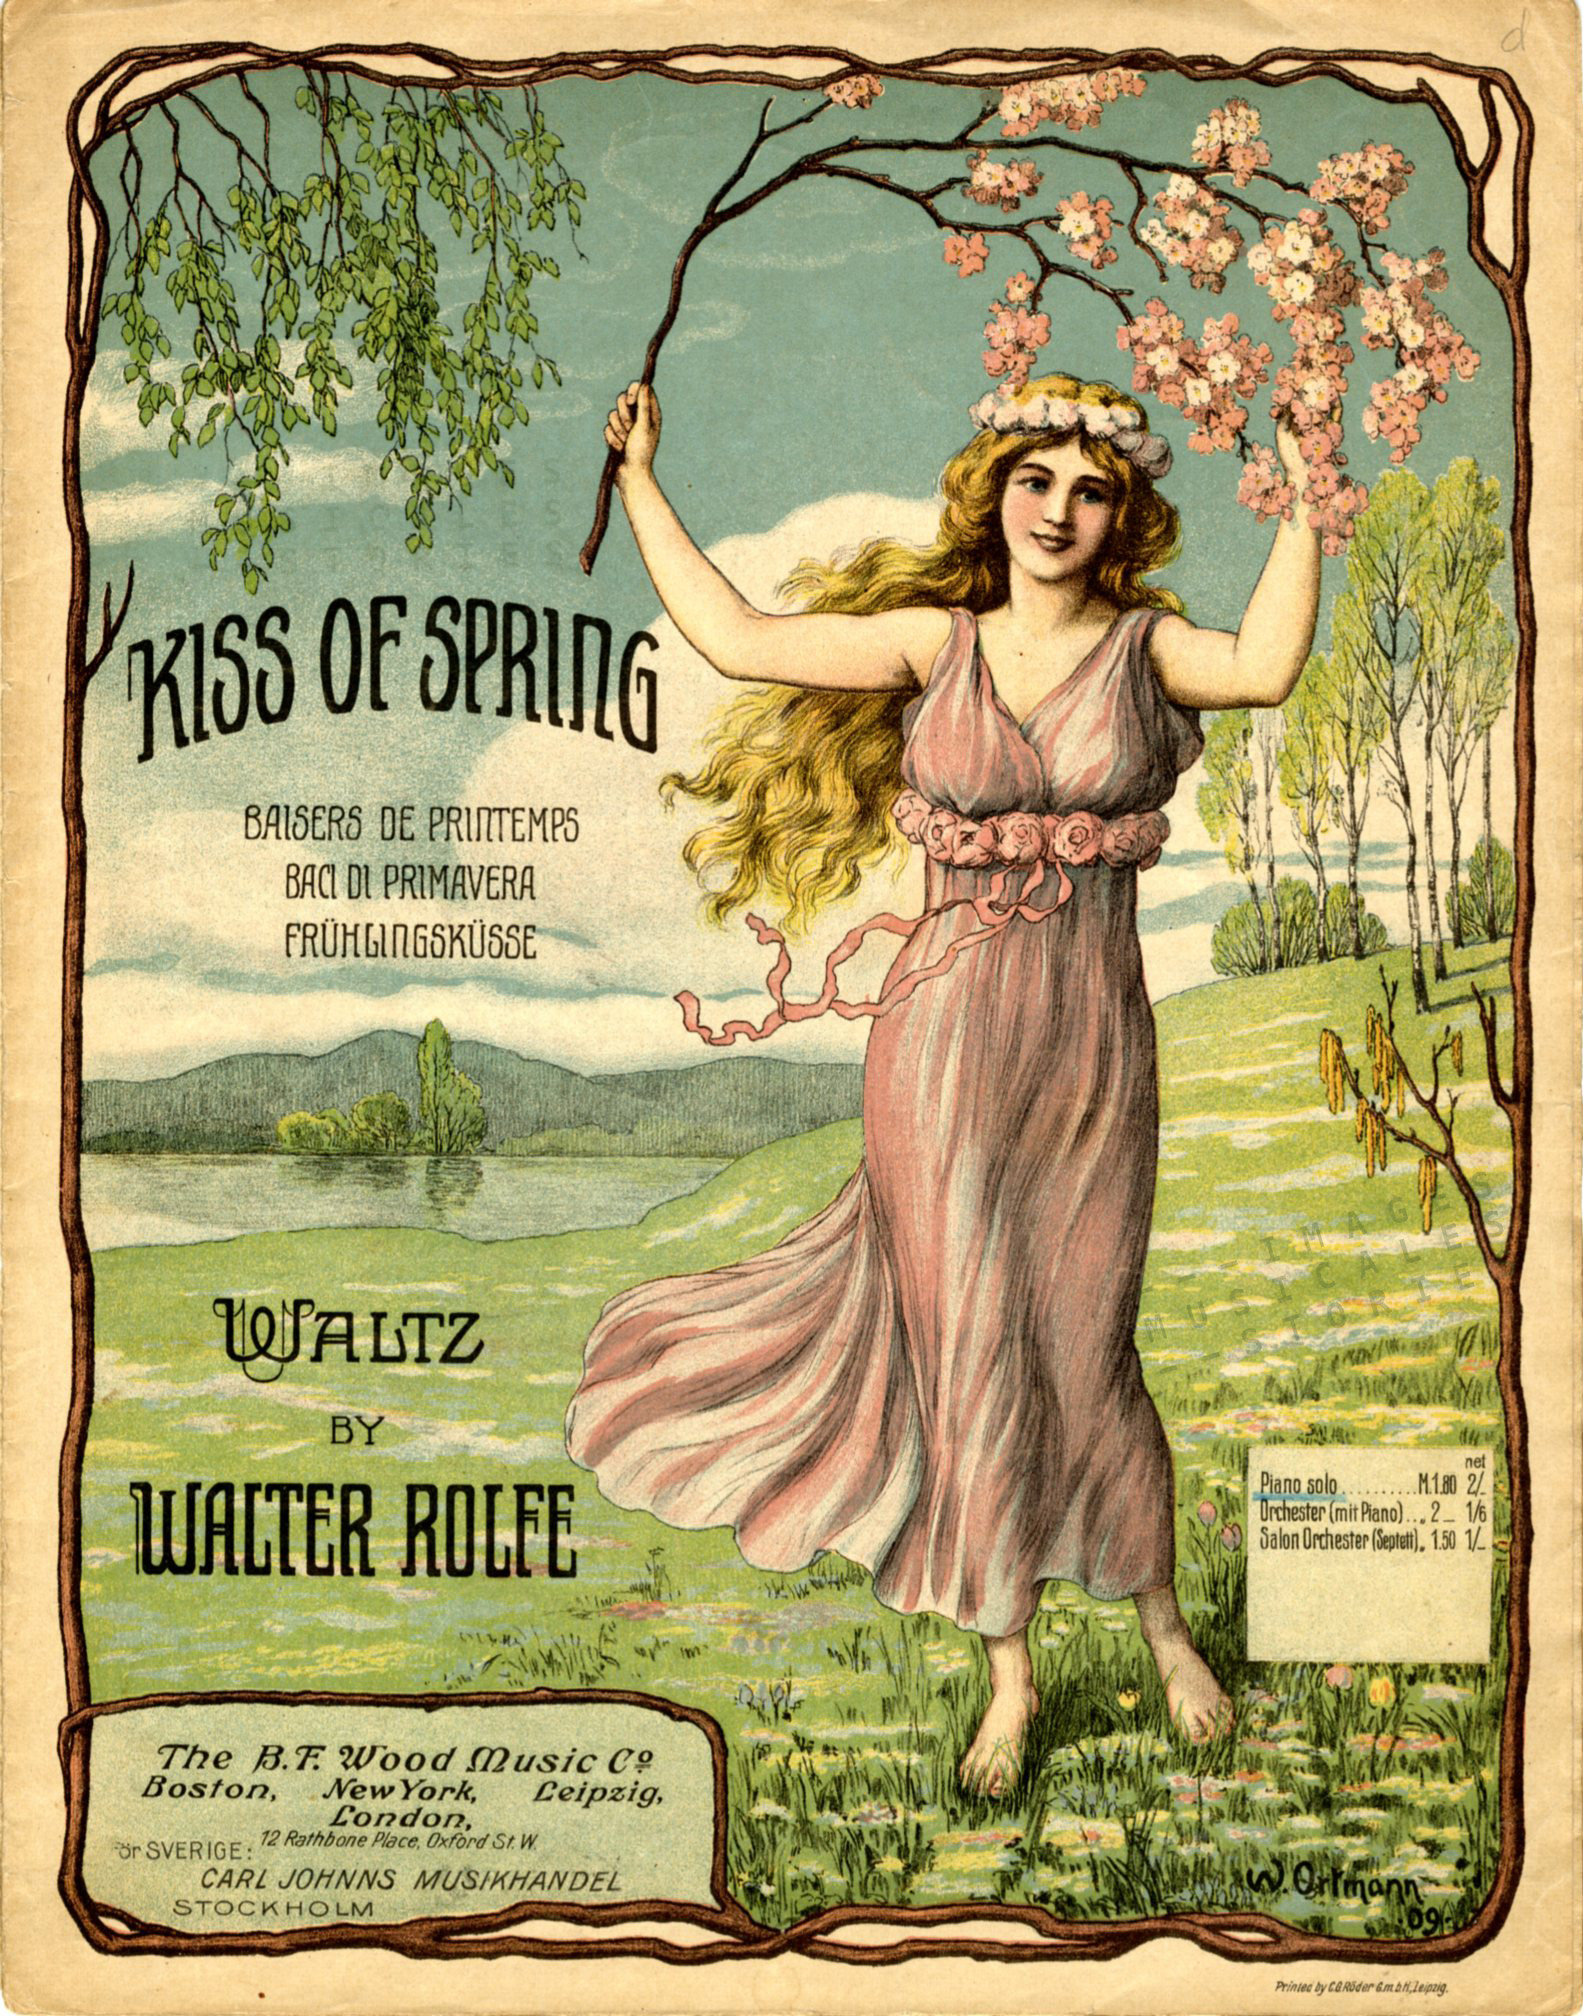 Kiss of Spring, illustrated by Wolfgang Ortmann in 1909.